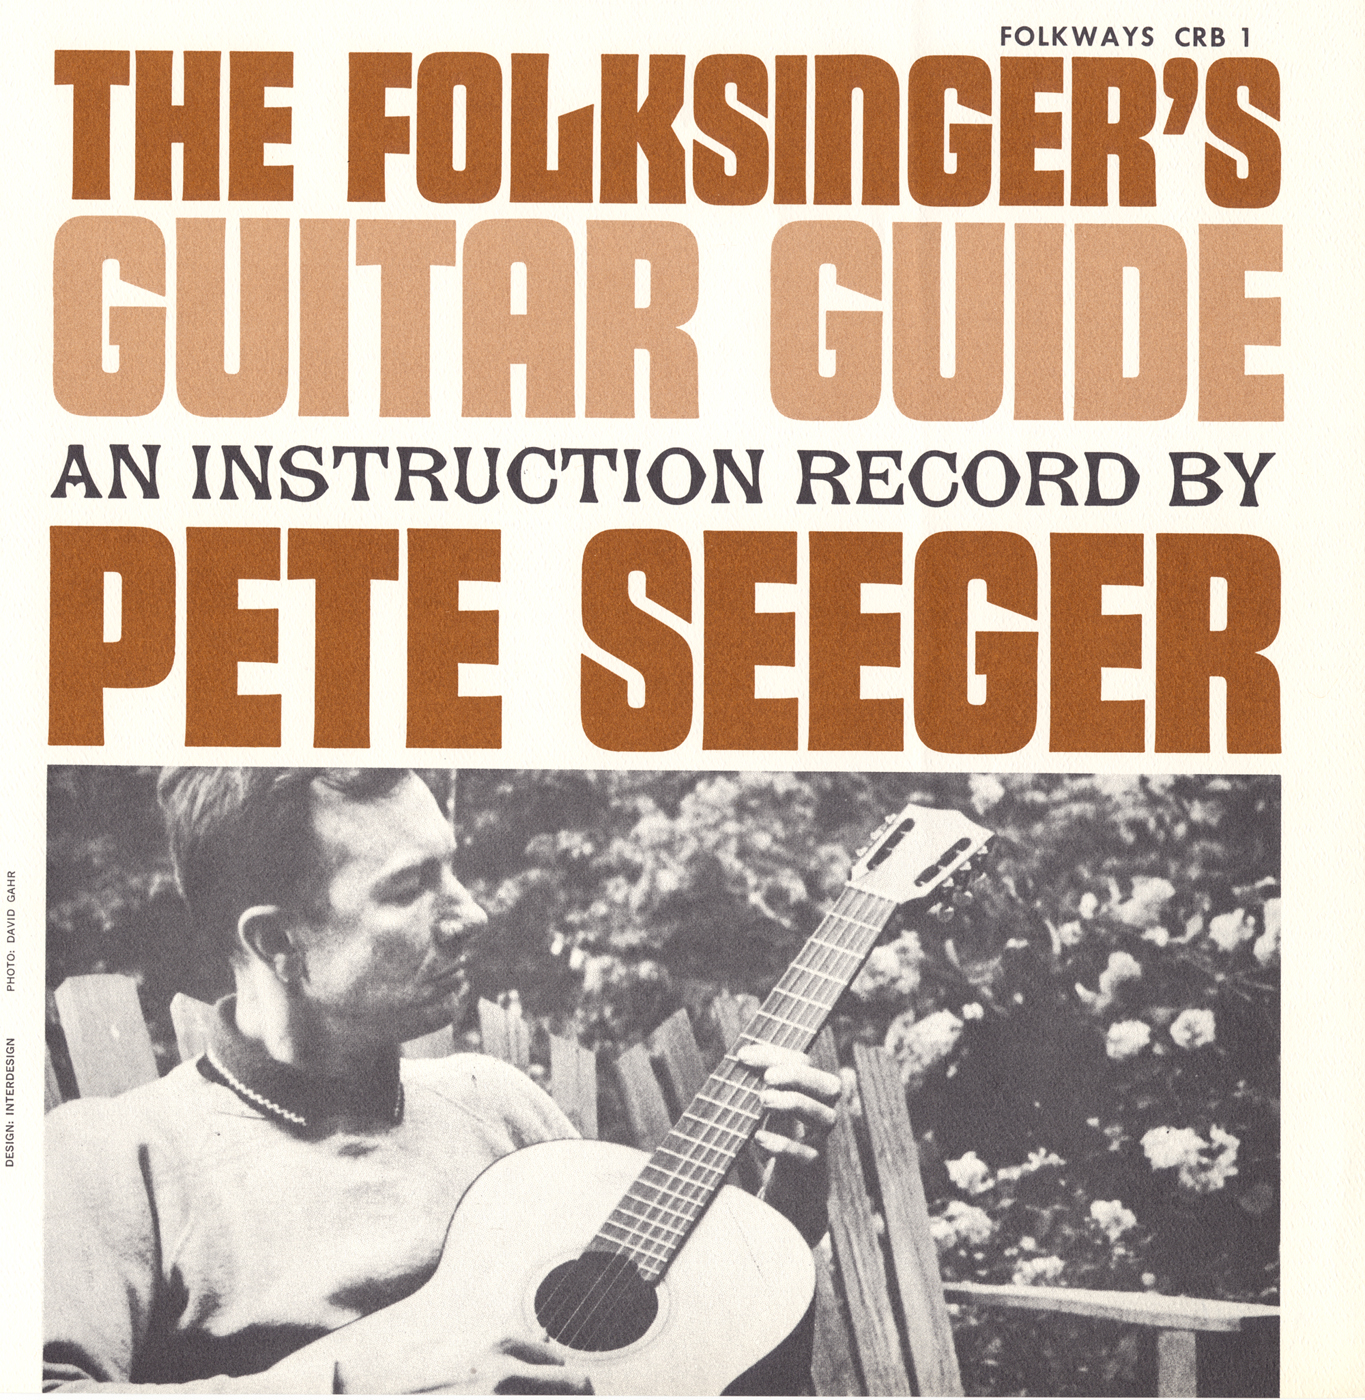 Folksingers Guitar Guide Vol 1 An Instruction Record